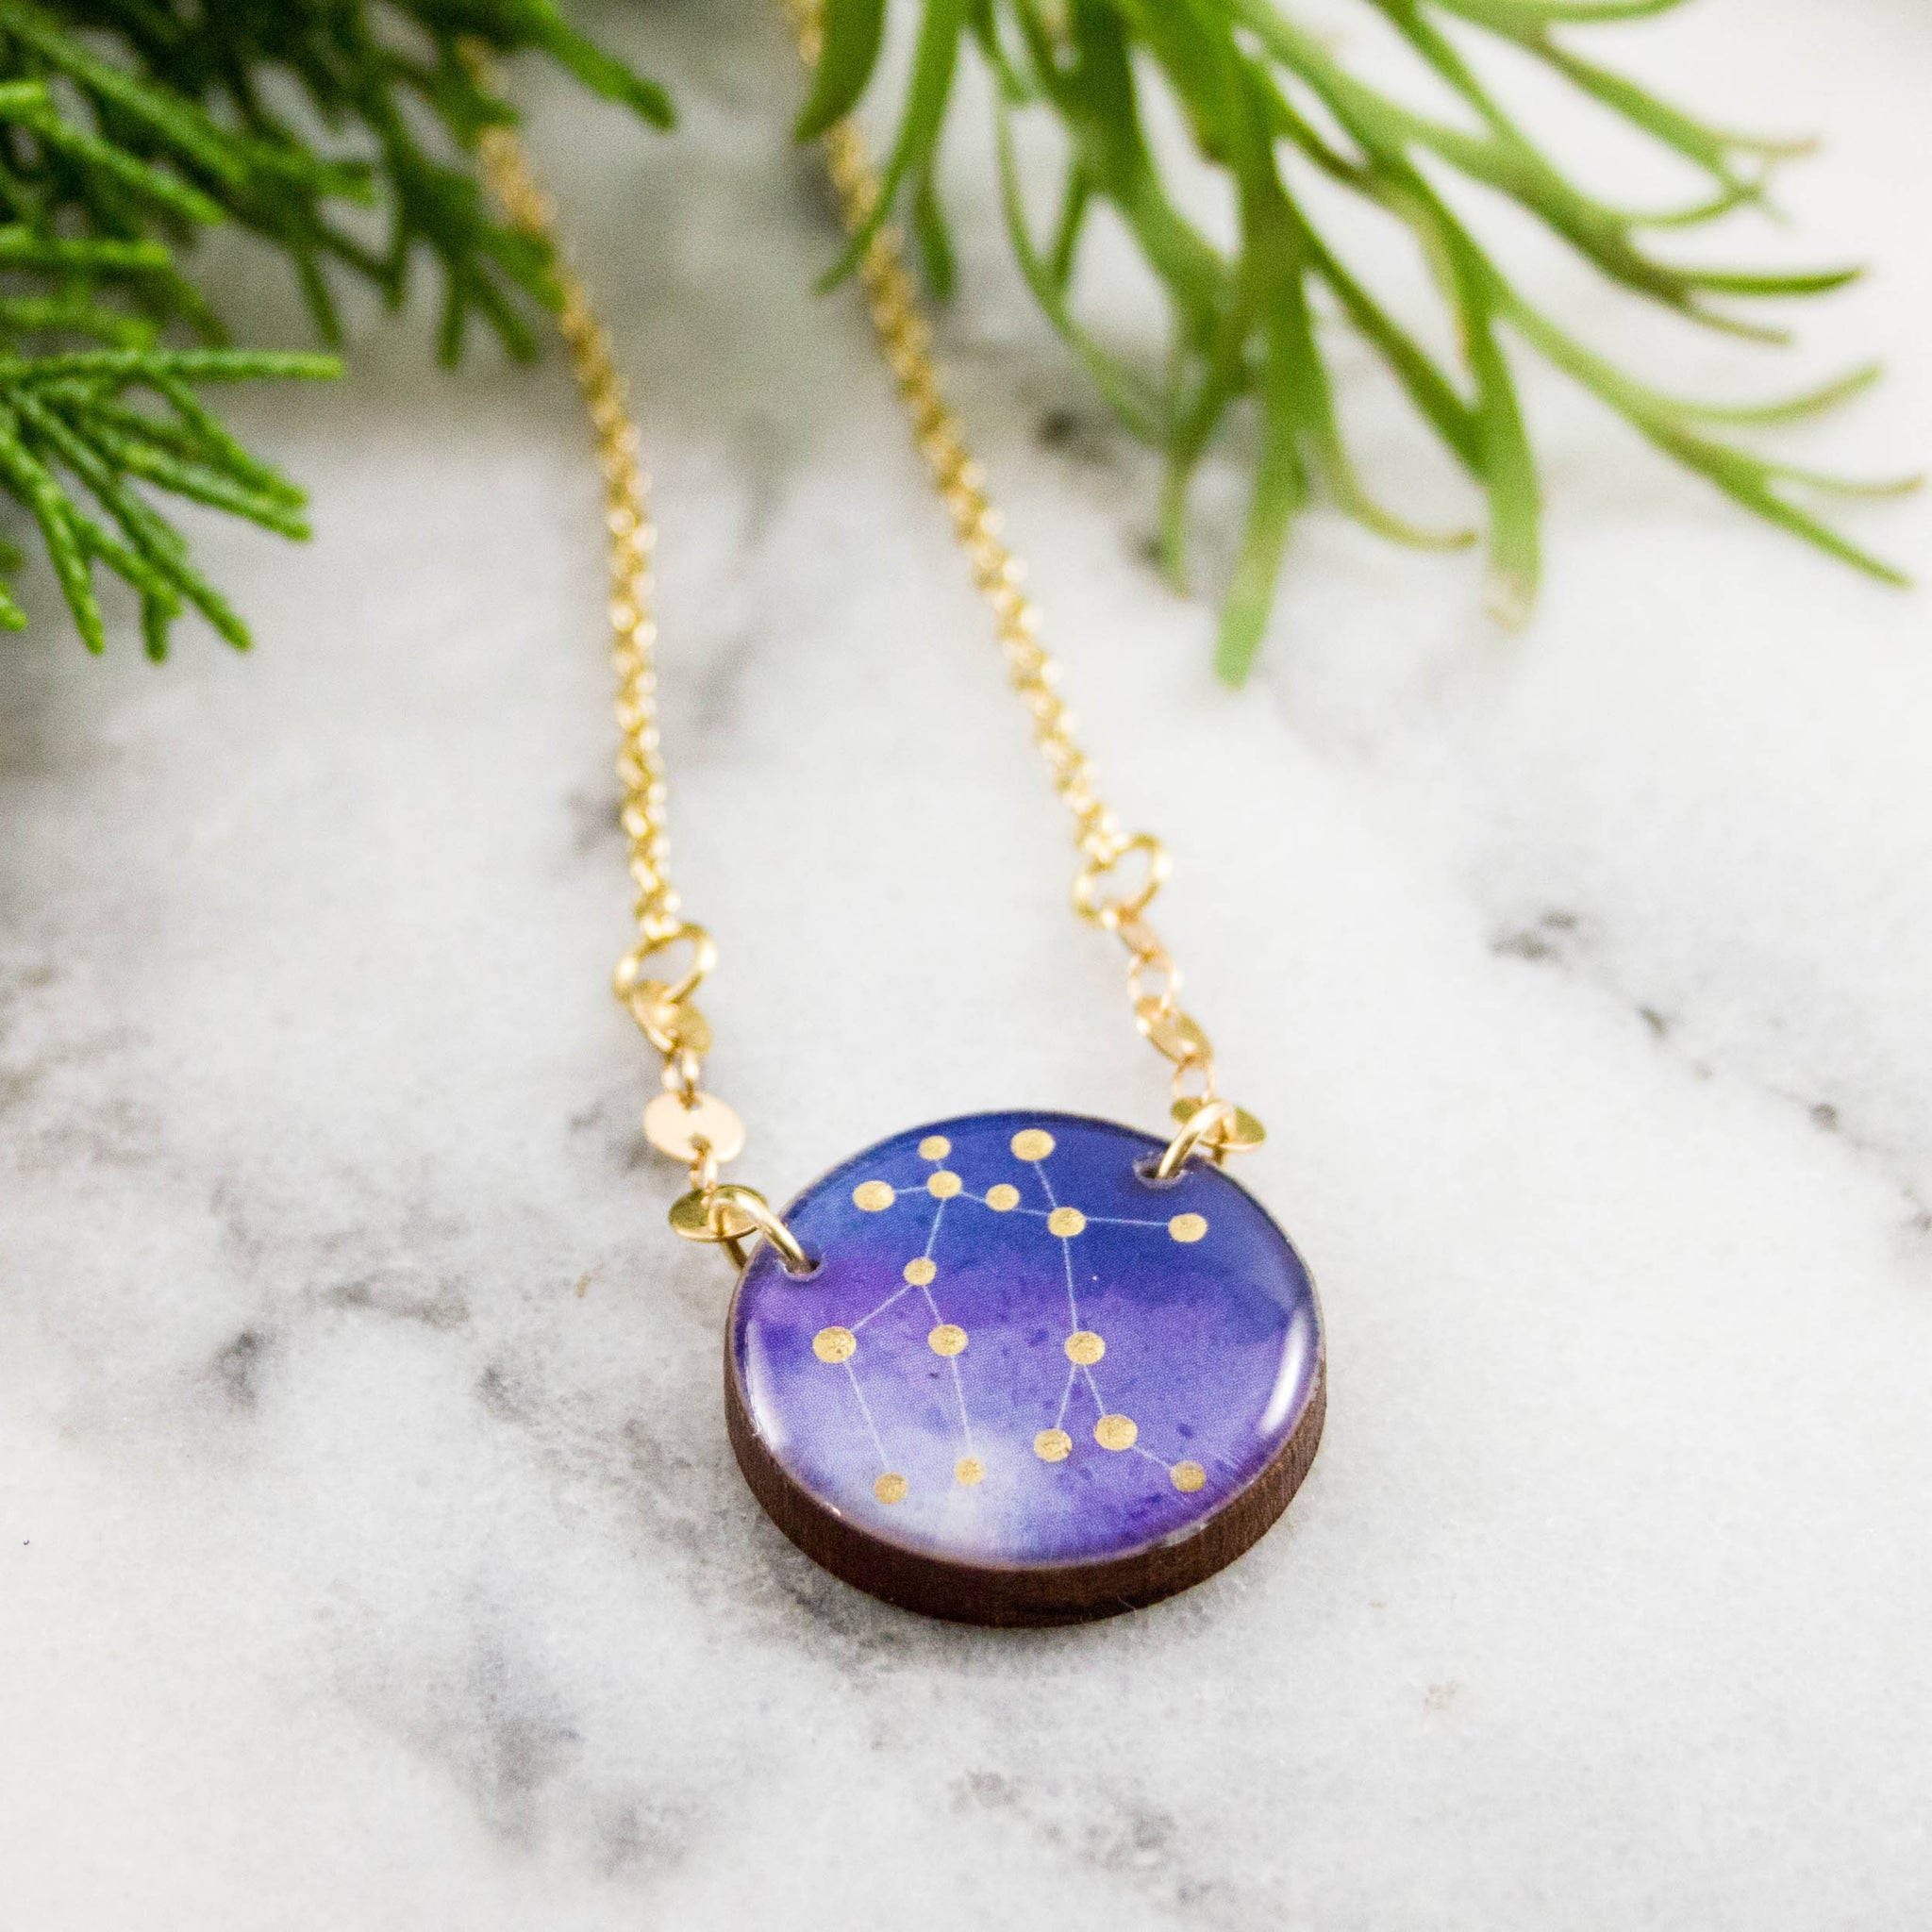 Gemini Handpainted Constellation Necklace